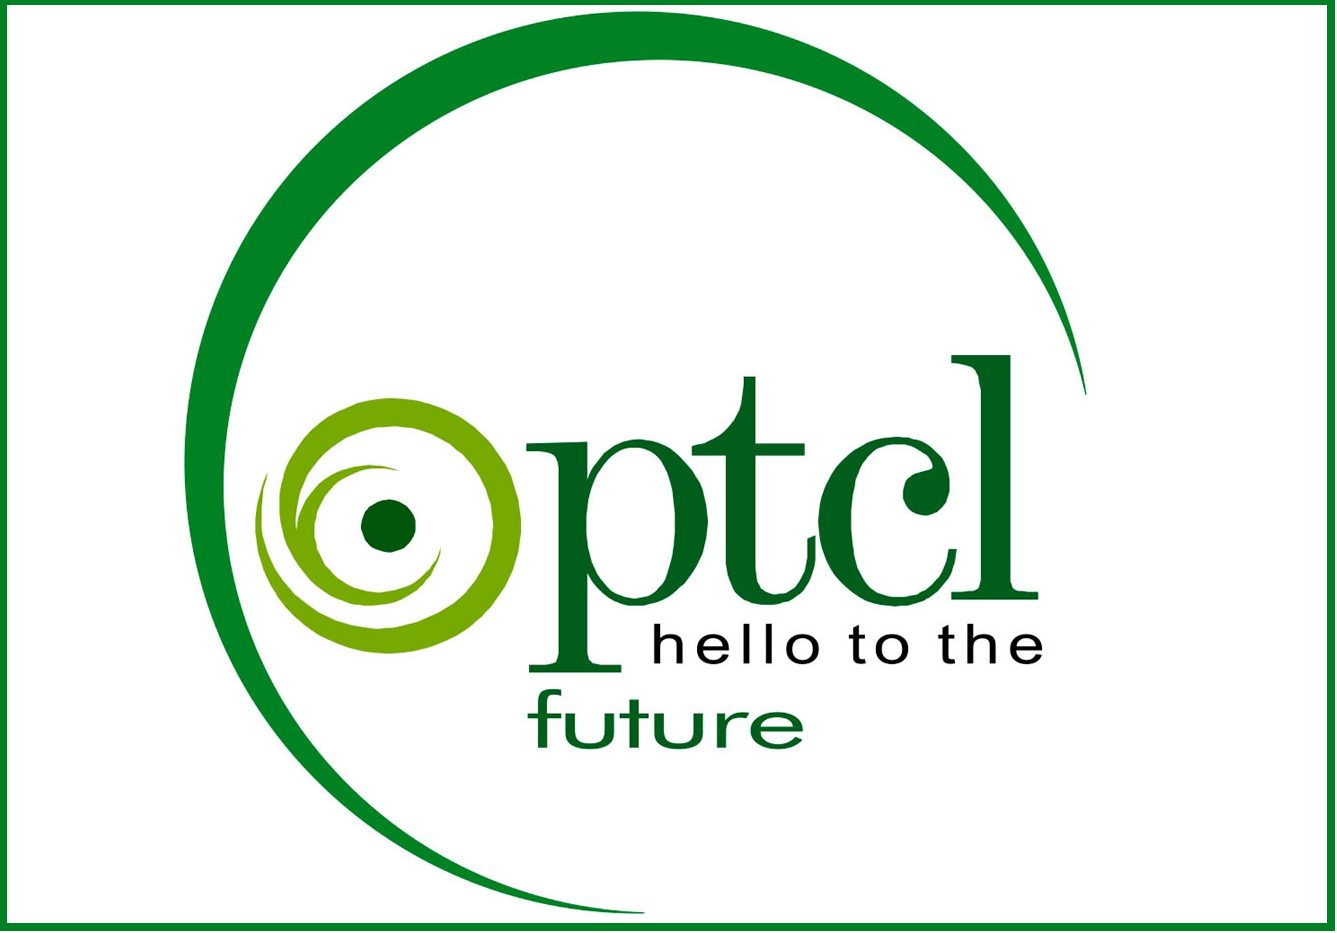 PTCL, the largest ICT services provider in the country has announced expanding its reach to Europe through Sparkle, its long-term partner in the region